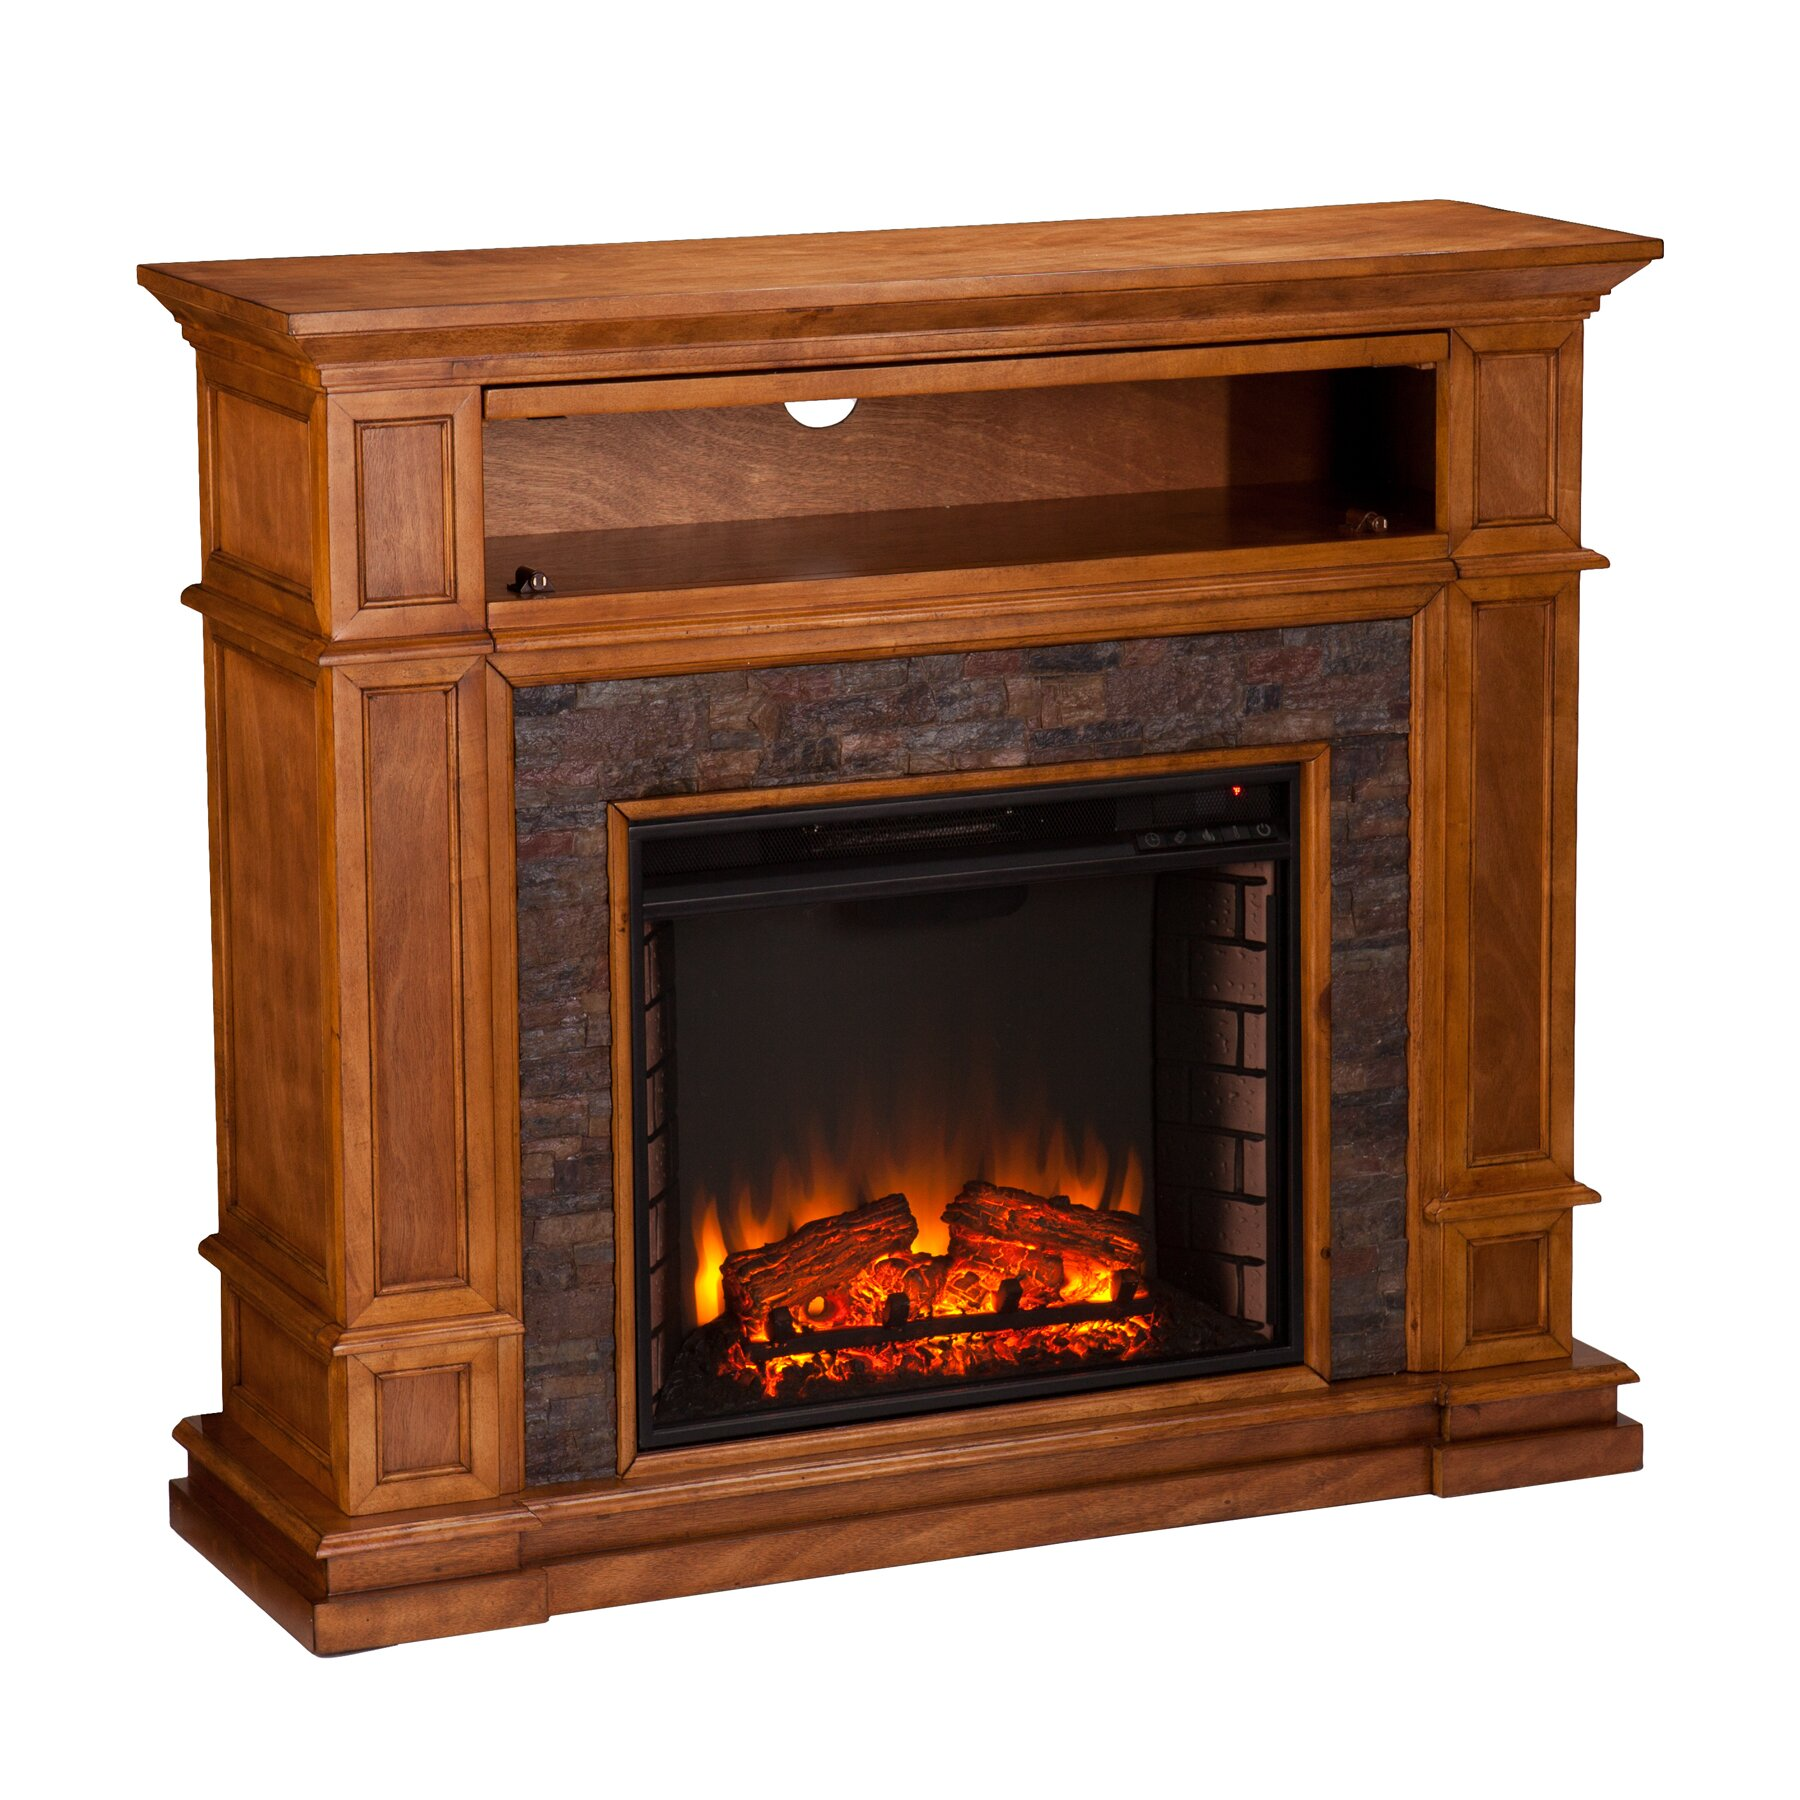 birmingham simulated stone media center electric fireplace